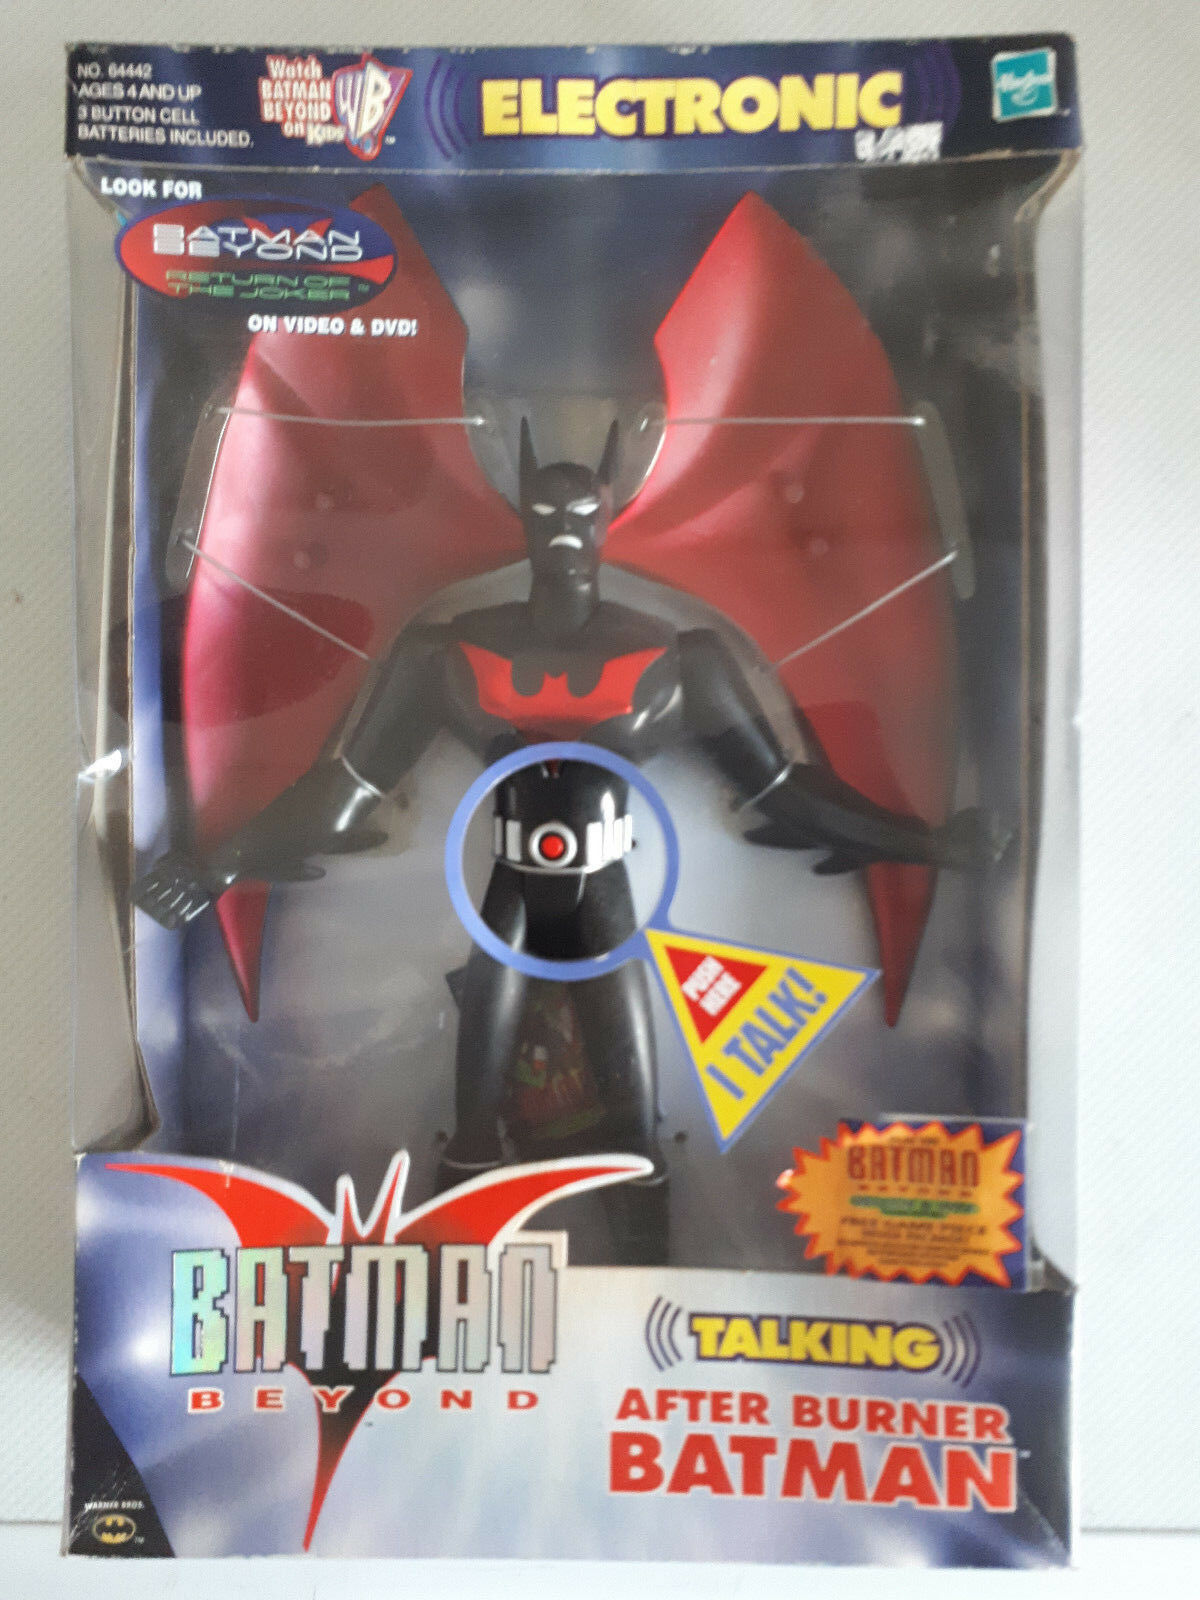 HASBRO Electronic BATMAN BEYOND After Burner Batman Large 12